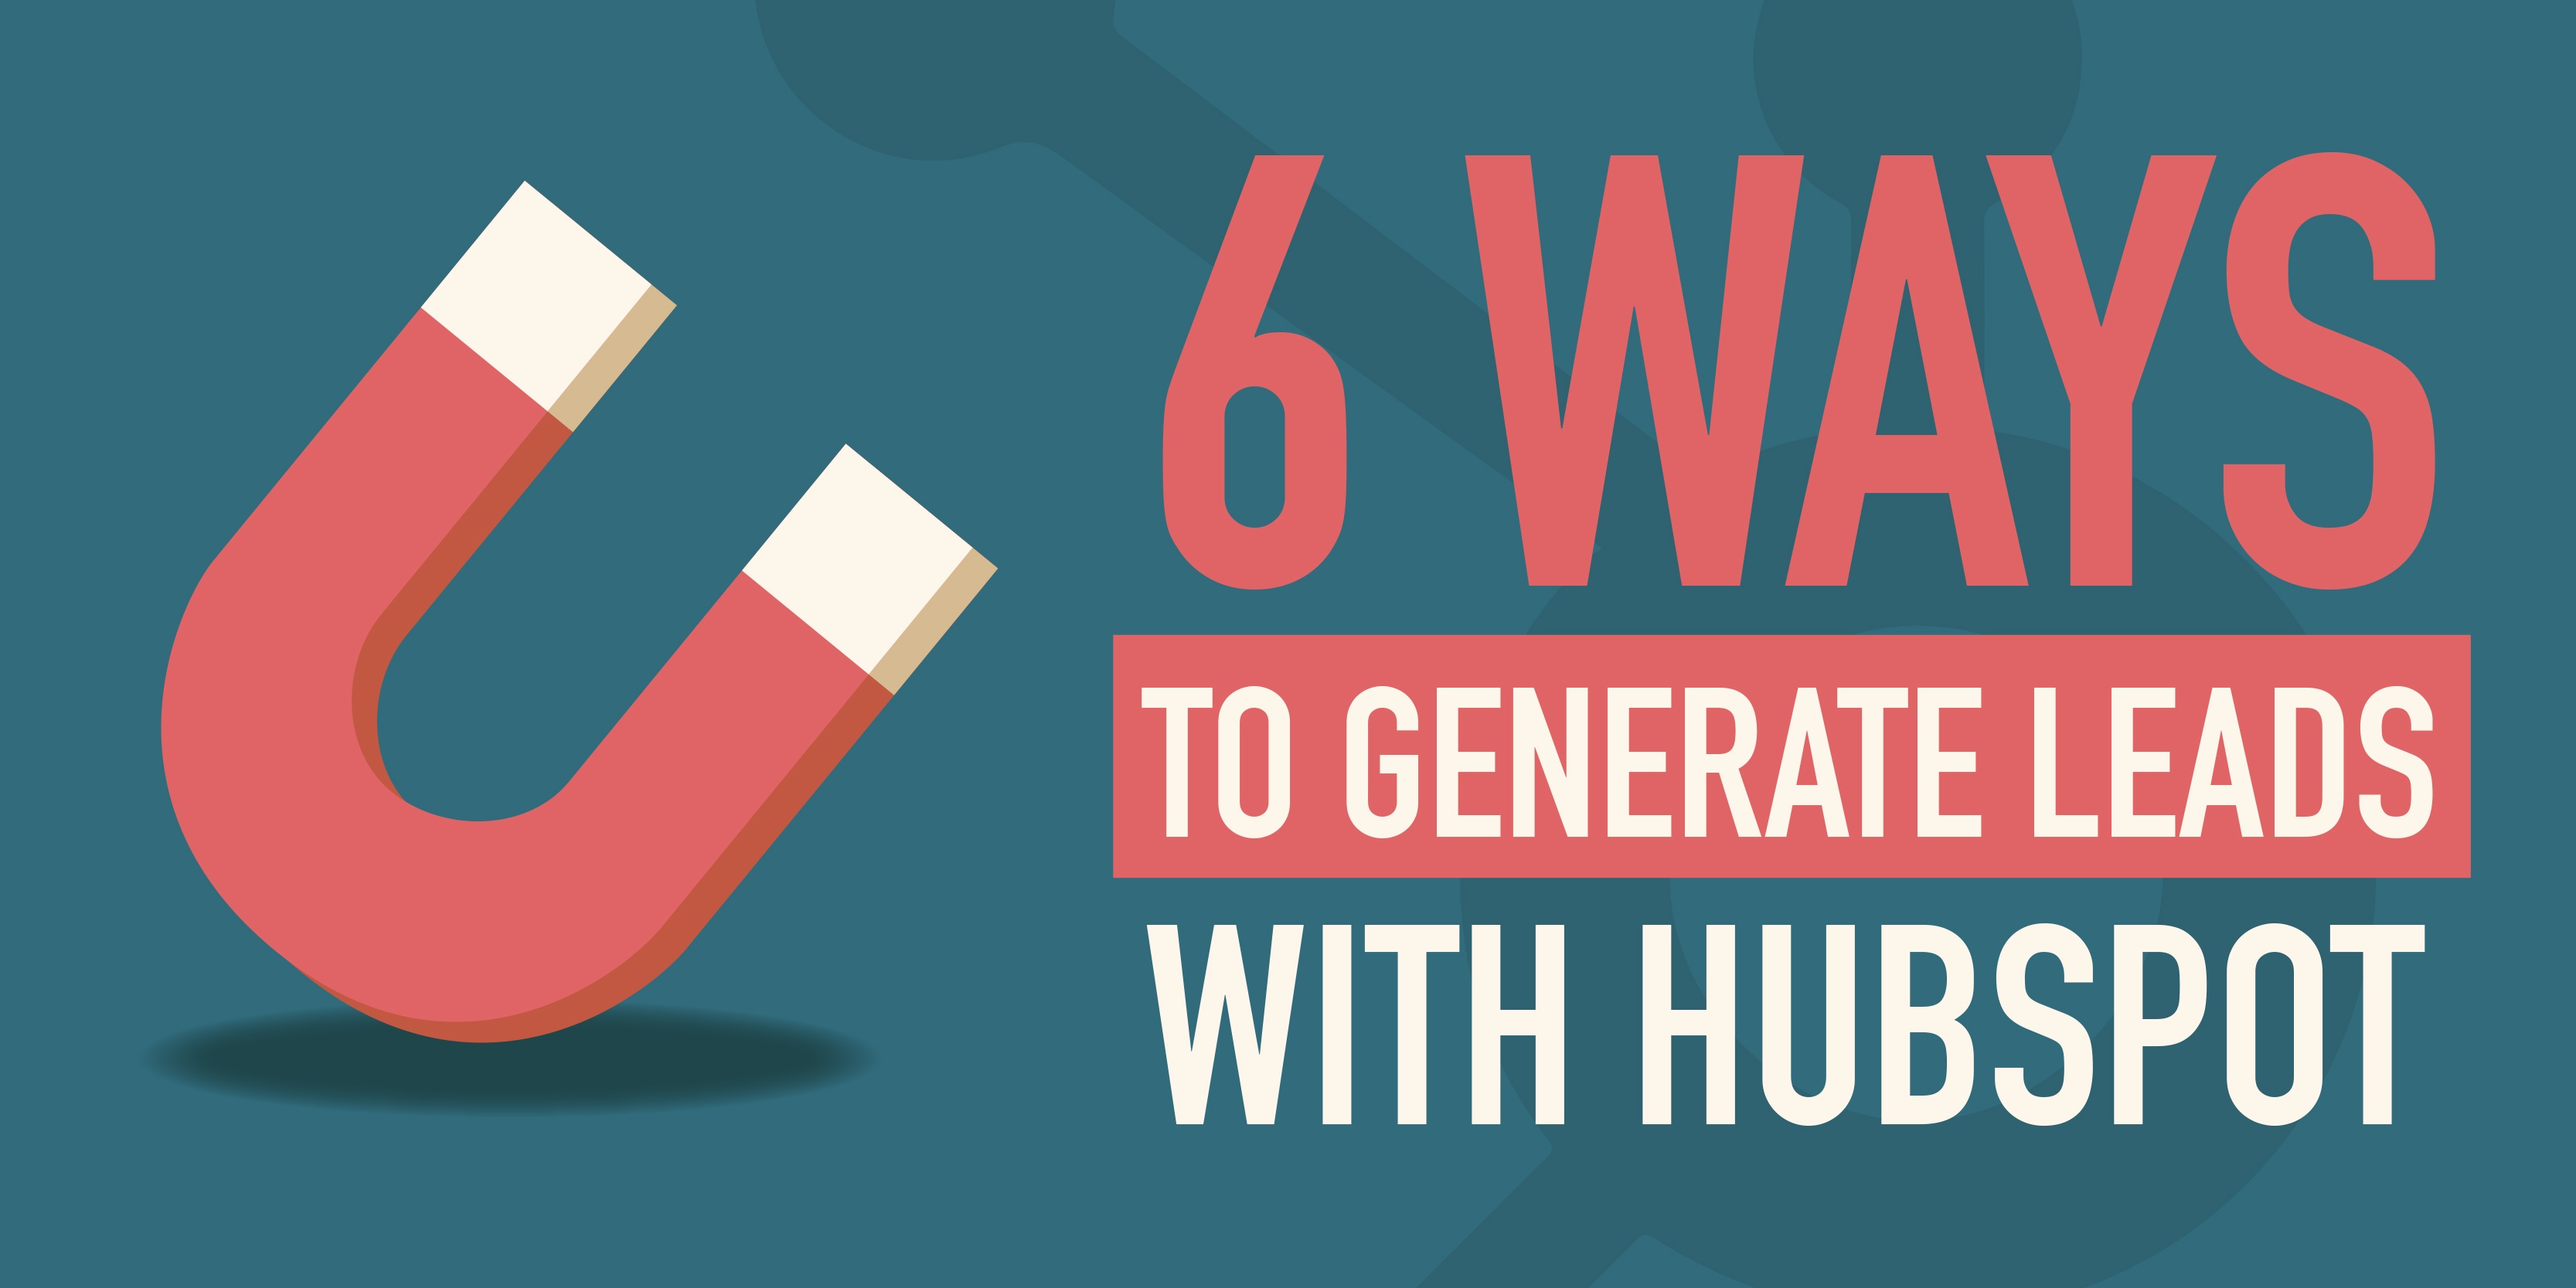 Morey-6-Ways-to-Generate-Leads-With-HubSpot